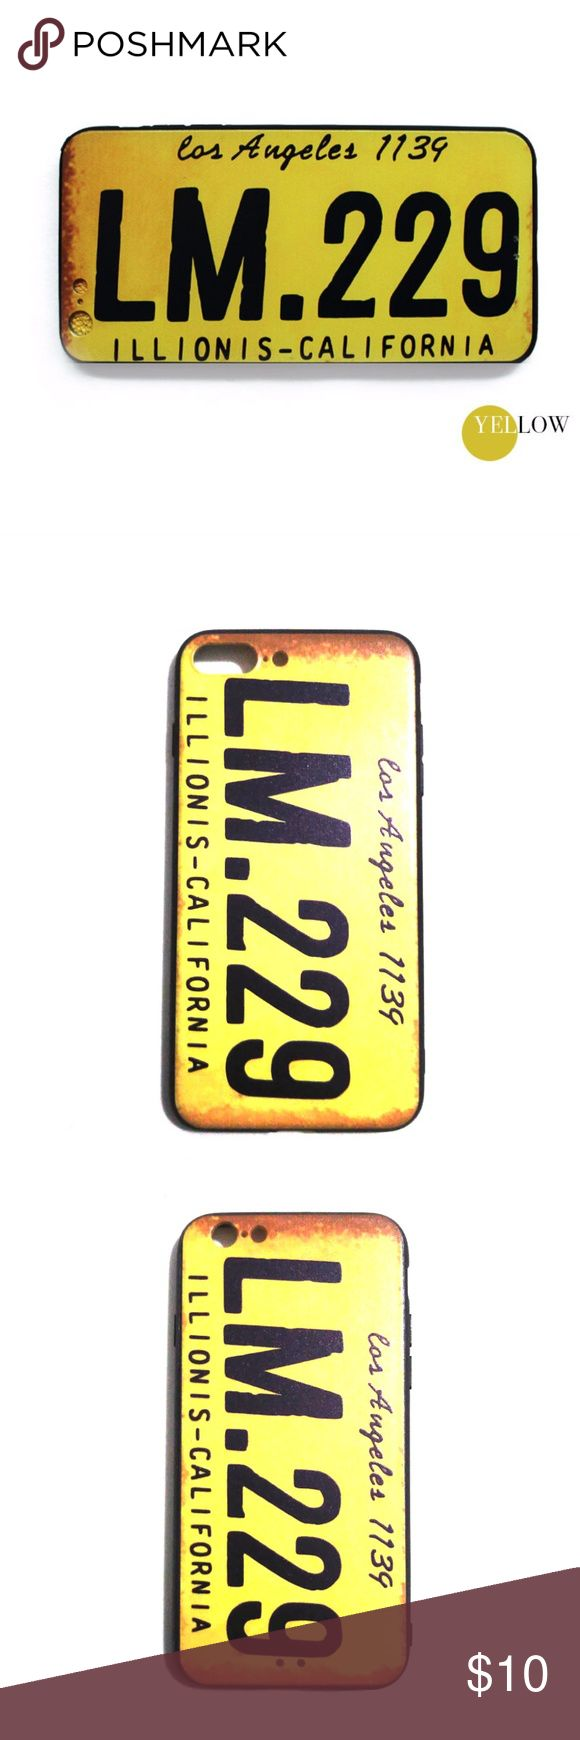 iPhone Case 6/6s 7/7 Plus NEW Style iPhone Case Innovative Design Beautiful and Fashion  THIS IPHONE CASE AVAILABLE FOR iPhone 6/6S iPhone 6/6S Plus iPhone 7 iPhone 7 Plus  Check my store for MORE OPTIONS: Vehicle Number Plate of Los Angeles LM.299  Vehicle Number Plate of Oklahoma FU 724 The Beatles Hollywood Clapperboard Elephant with Standing Ring Other